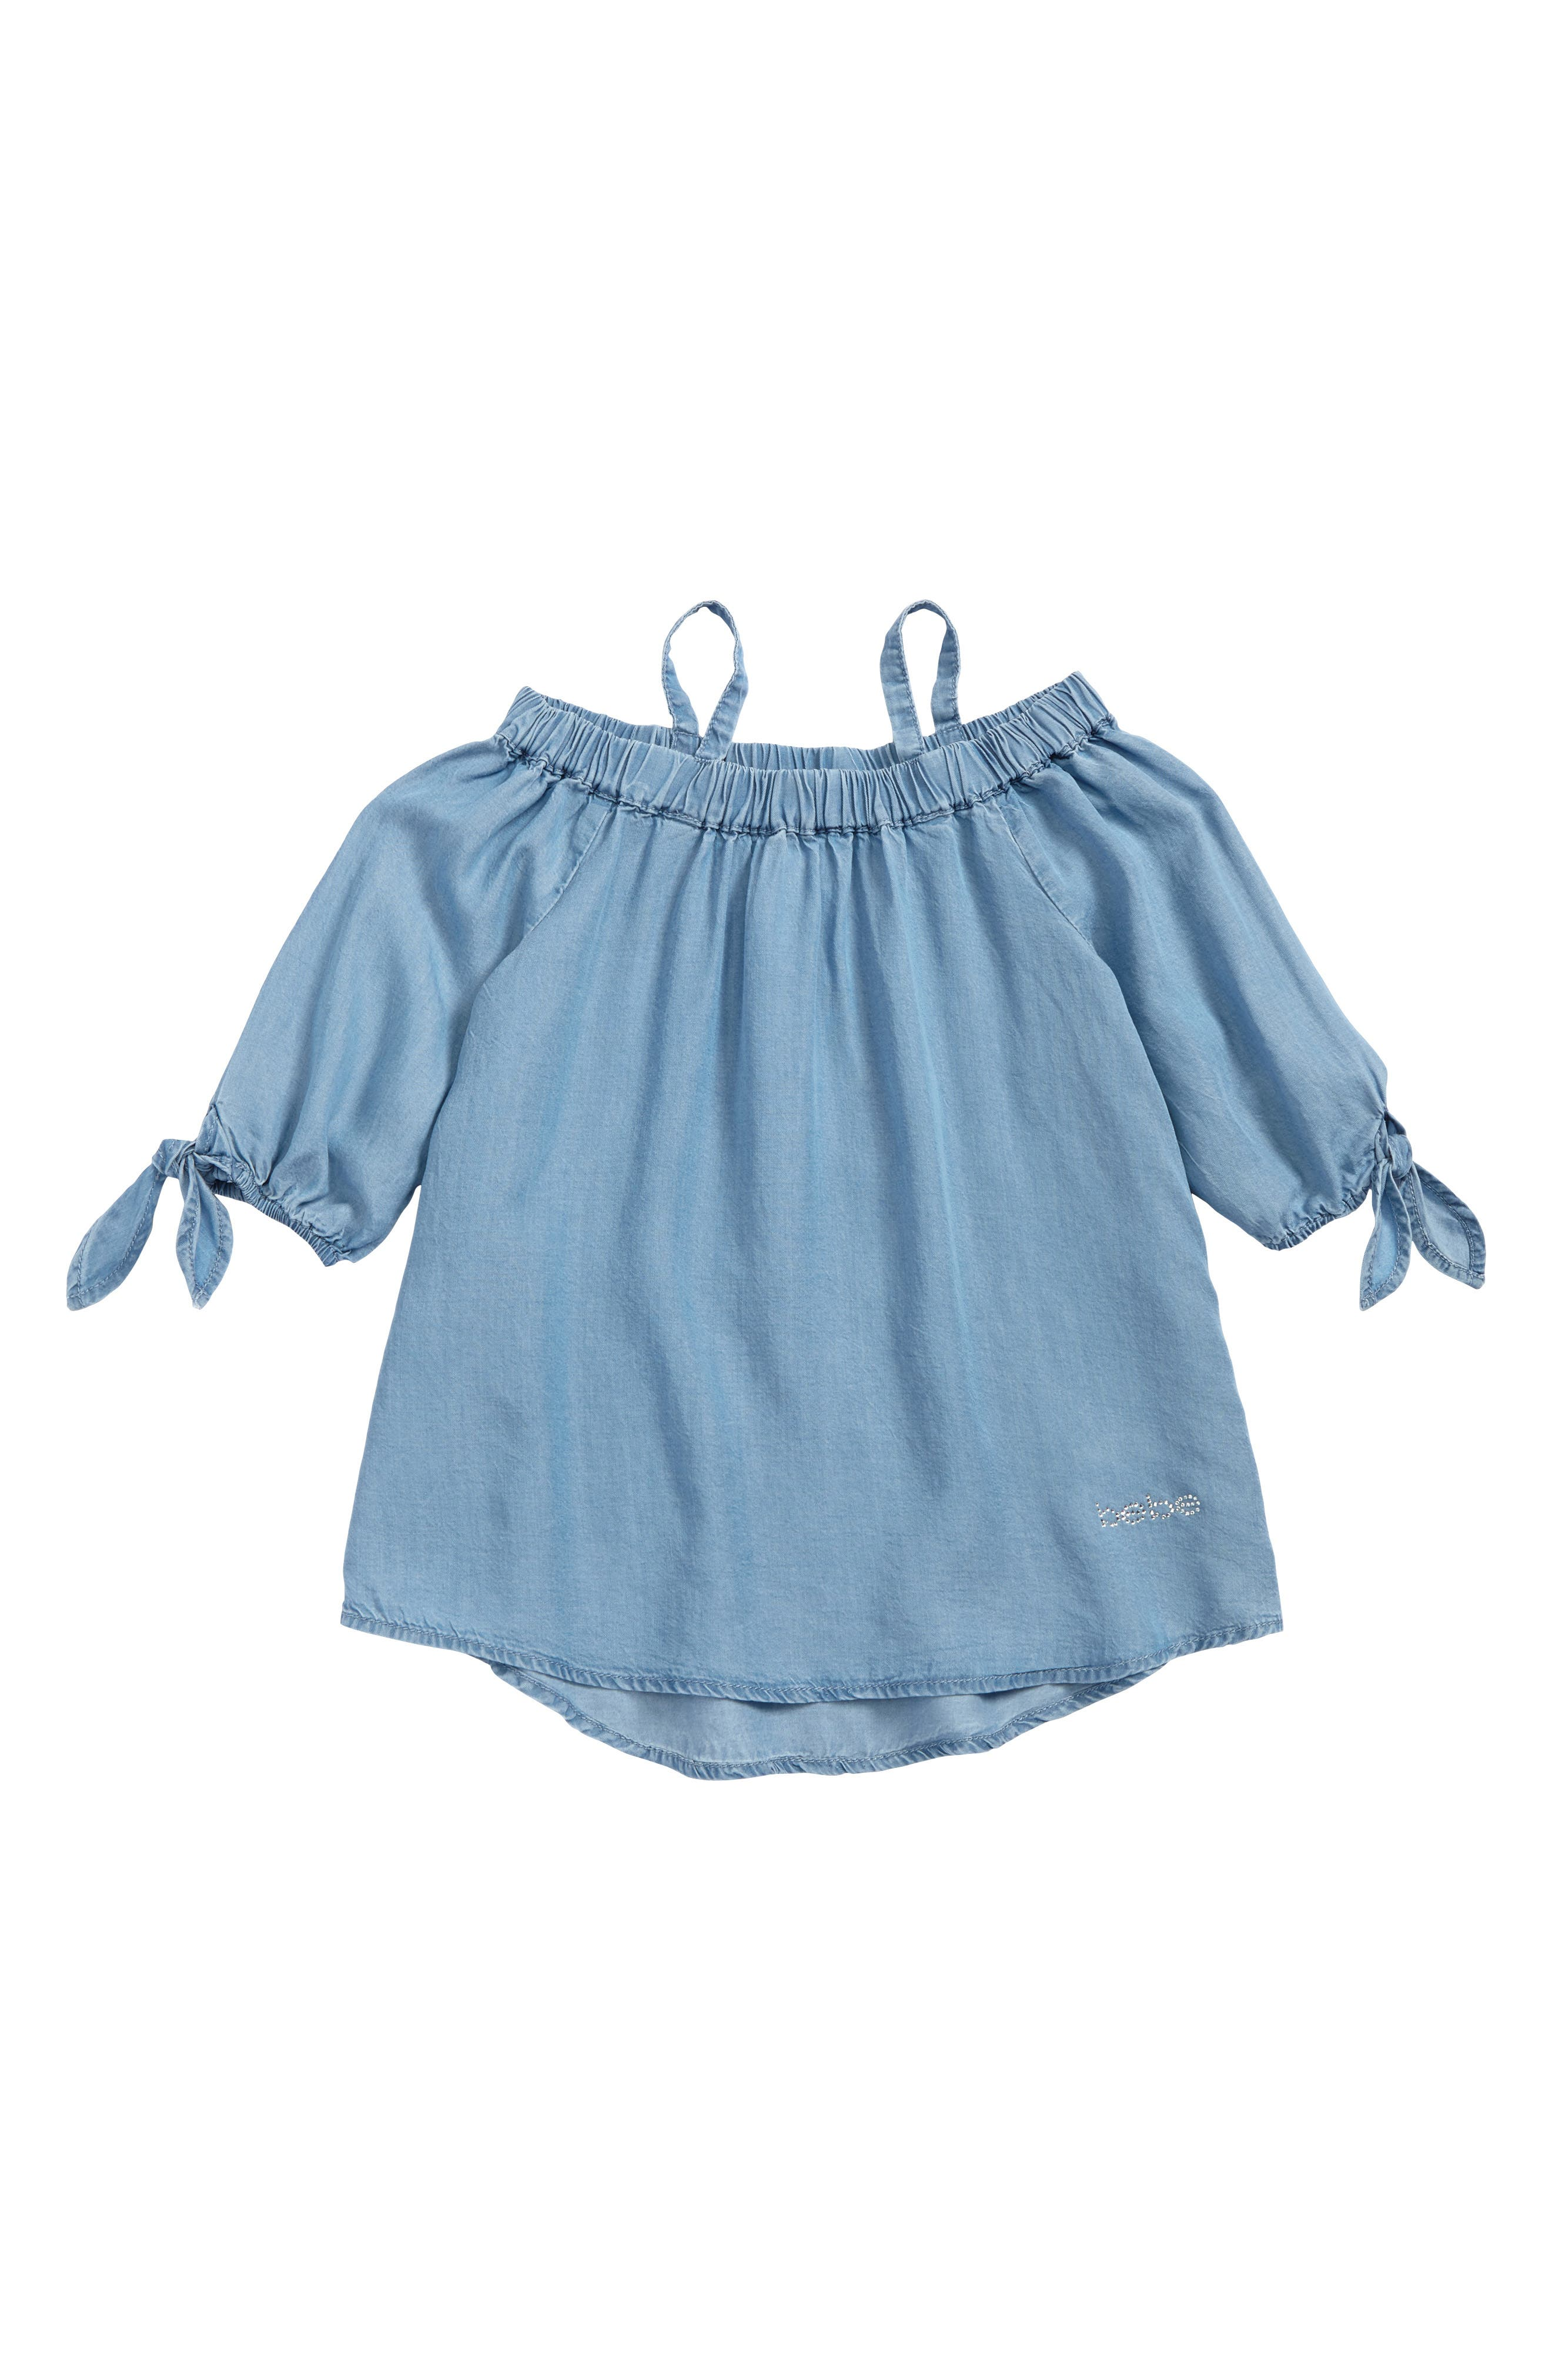 Main Image - bebe Off the Shoulder Top (Big Girls)